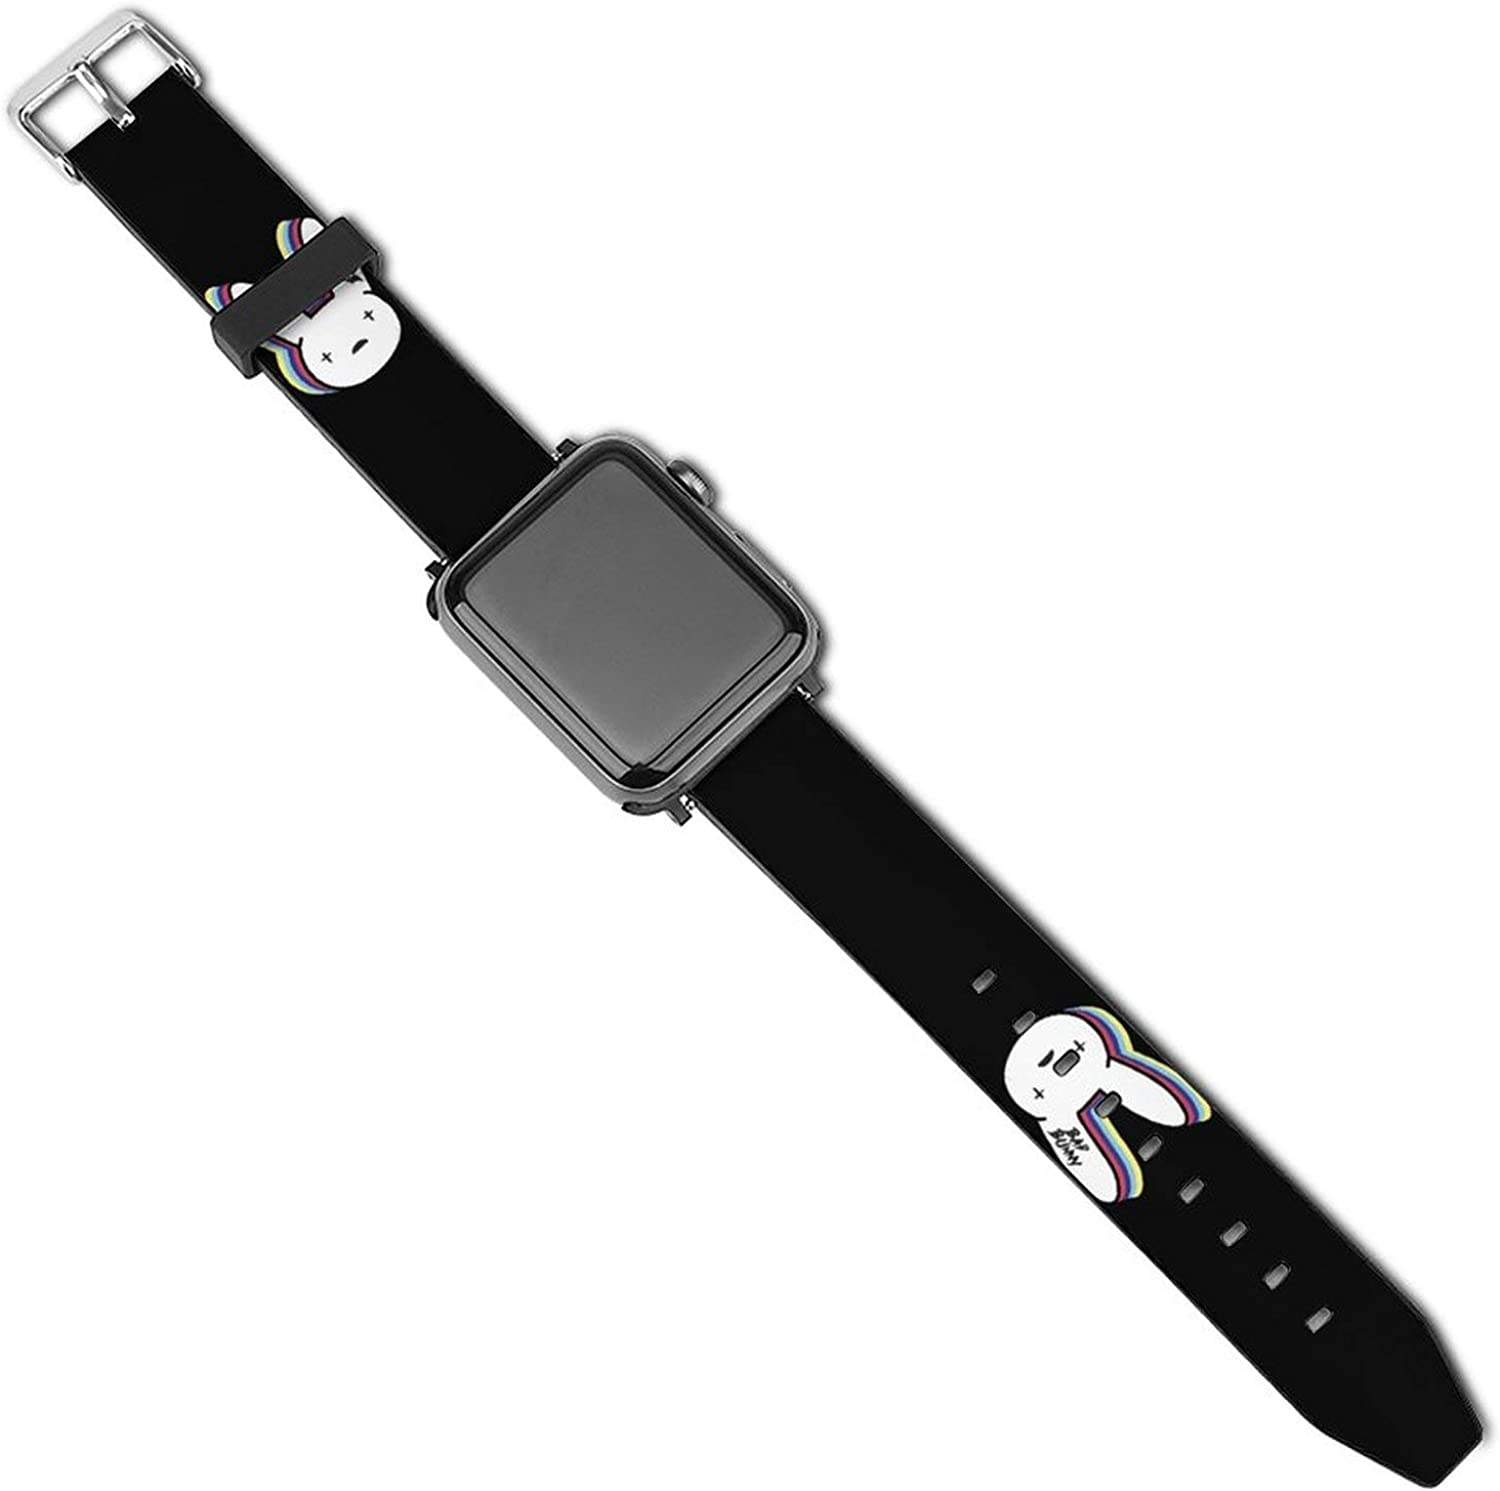 Bad Bun-ny Shadow Patterned Leather Wristband Strap for Apple Watch Series 5/4/3/2/1